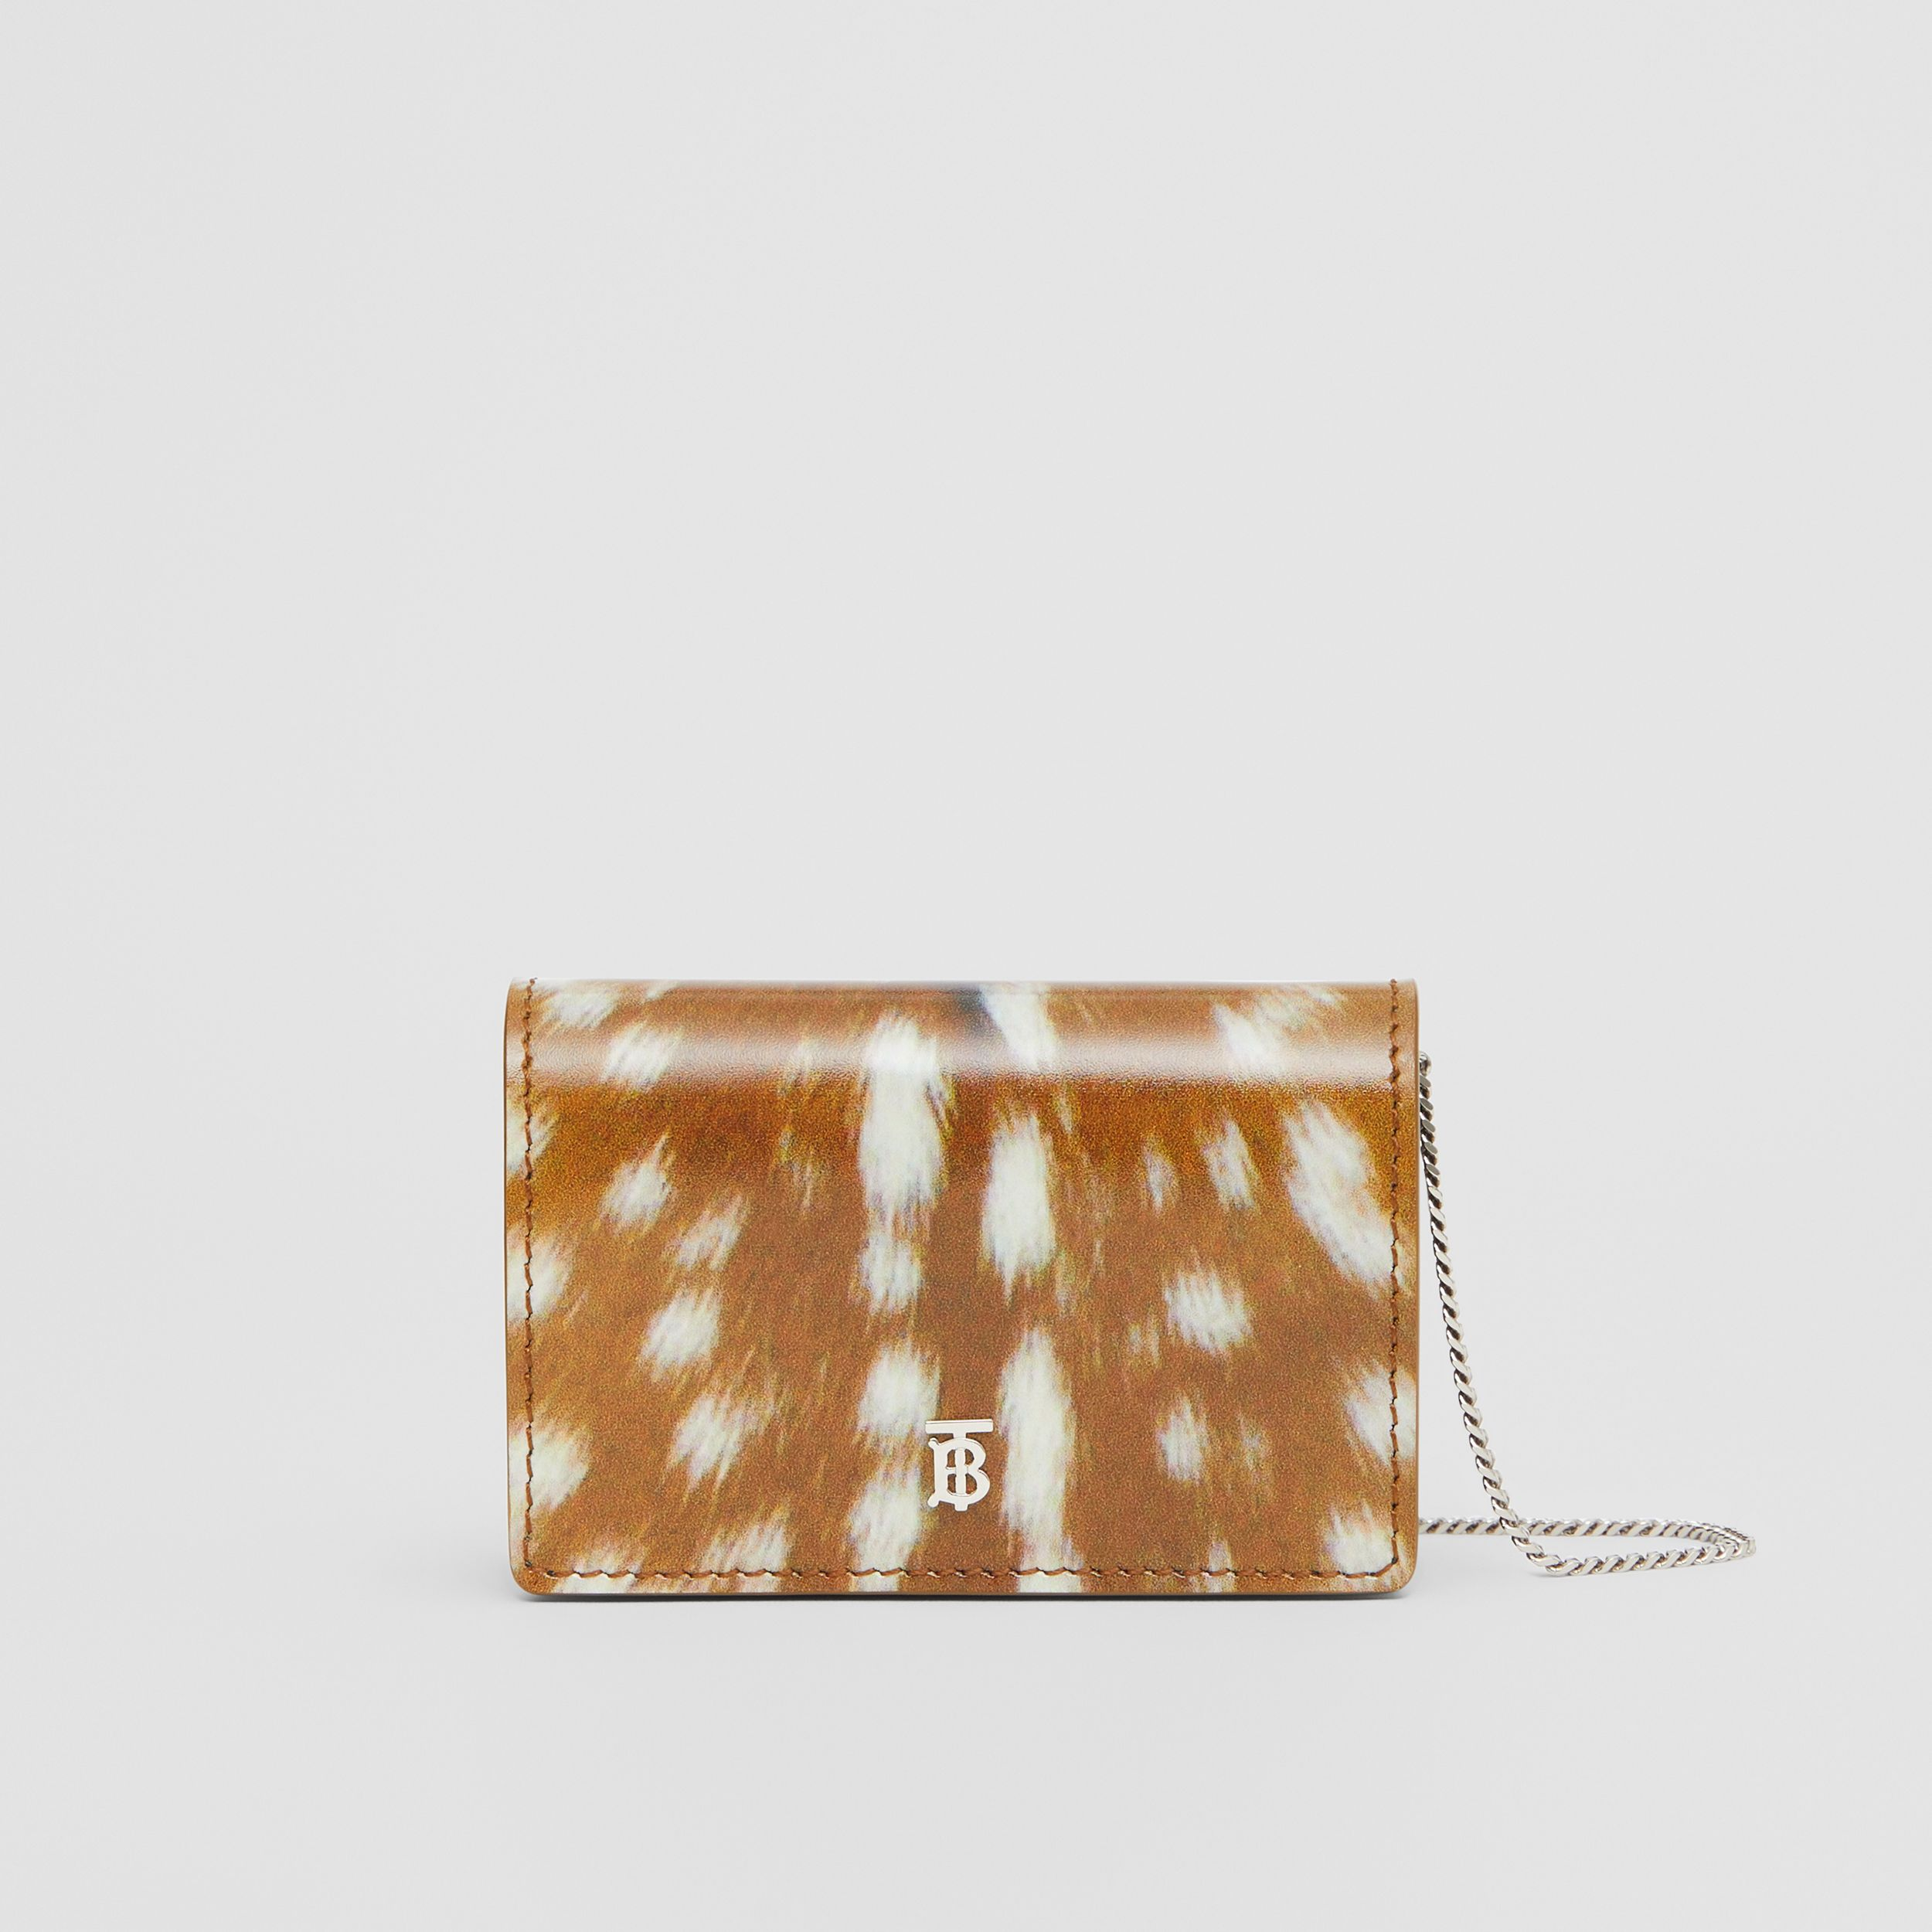 Deer Print Leather Card Case with Detachable Strap in Malt Brown - Women | Burberry Hong Kong S.A.R. - 1